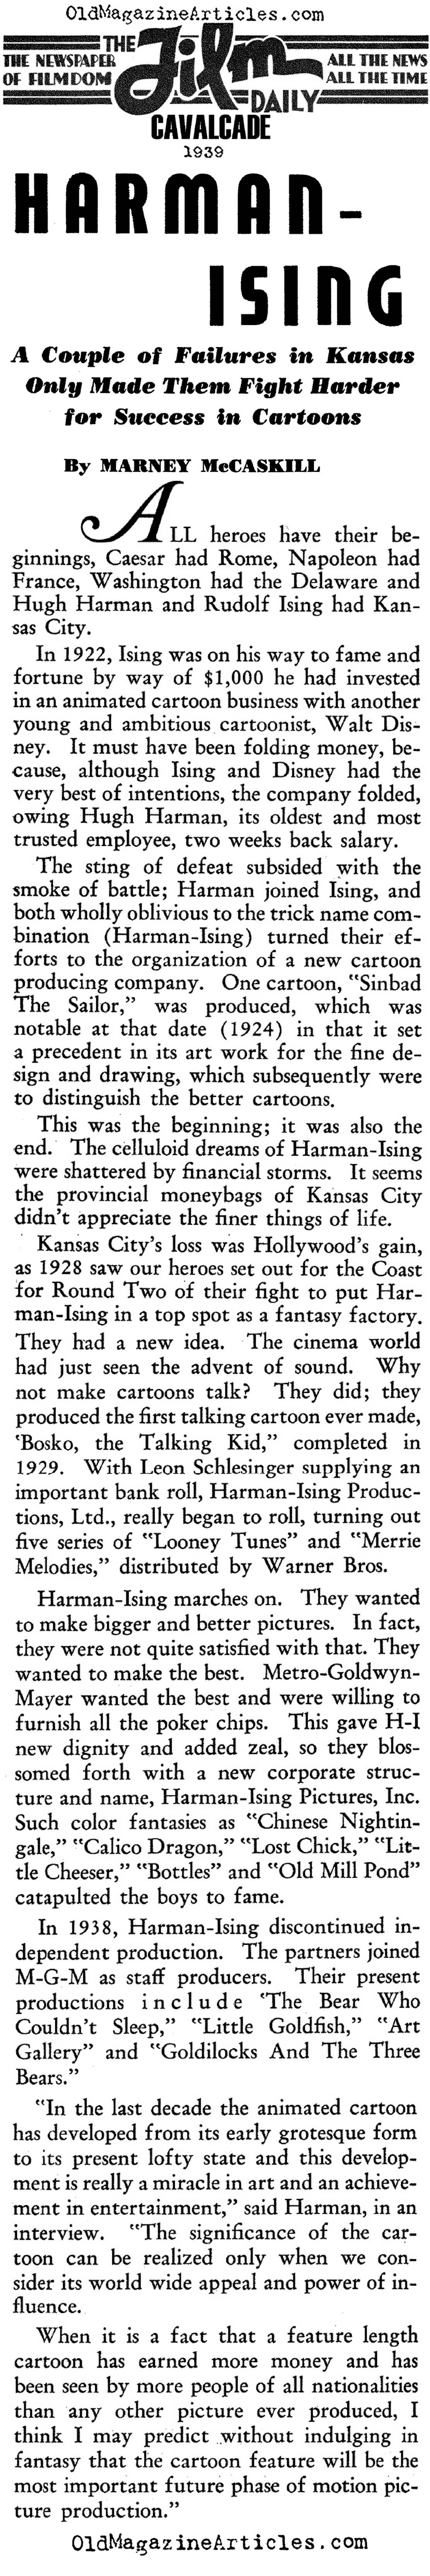 Hugh Harmon & Rudolf Ising: Animators (Film Daily, 1939)